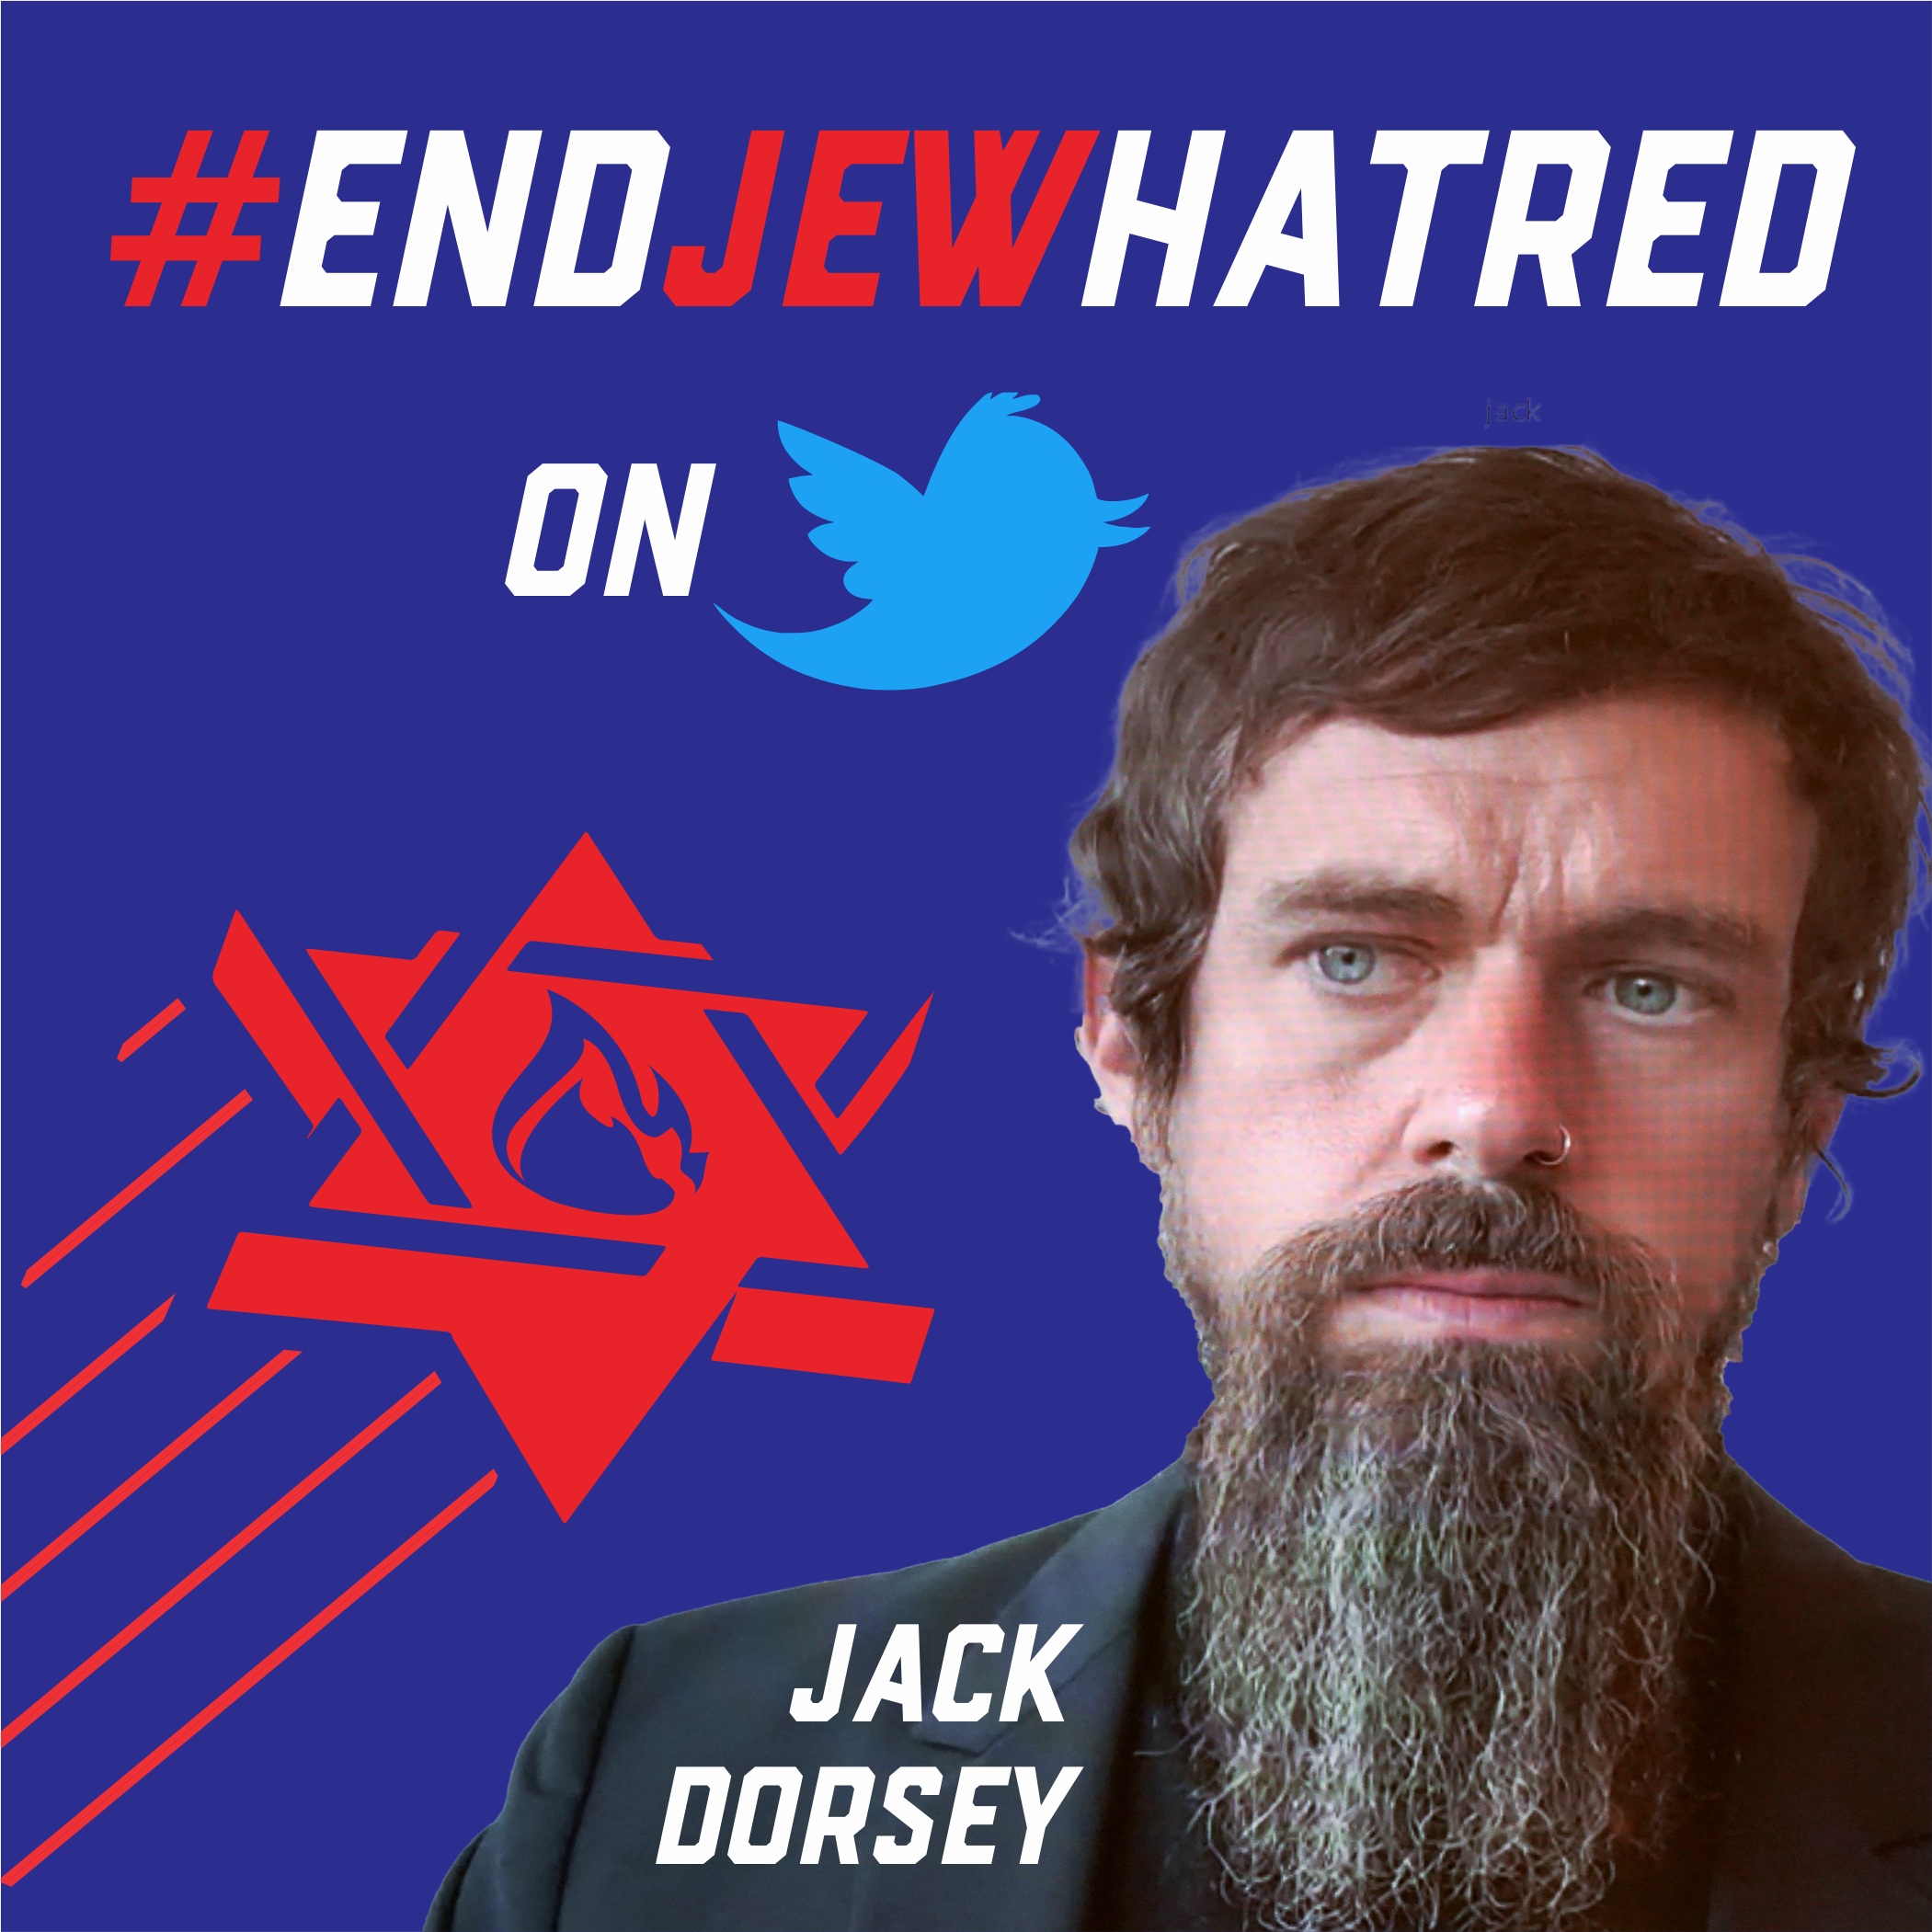 END JEW HATRED BLASTS HOLOCAUST DENYING TWEETS IN FRONT OF TWITTER CEO'S HOUSE